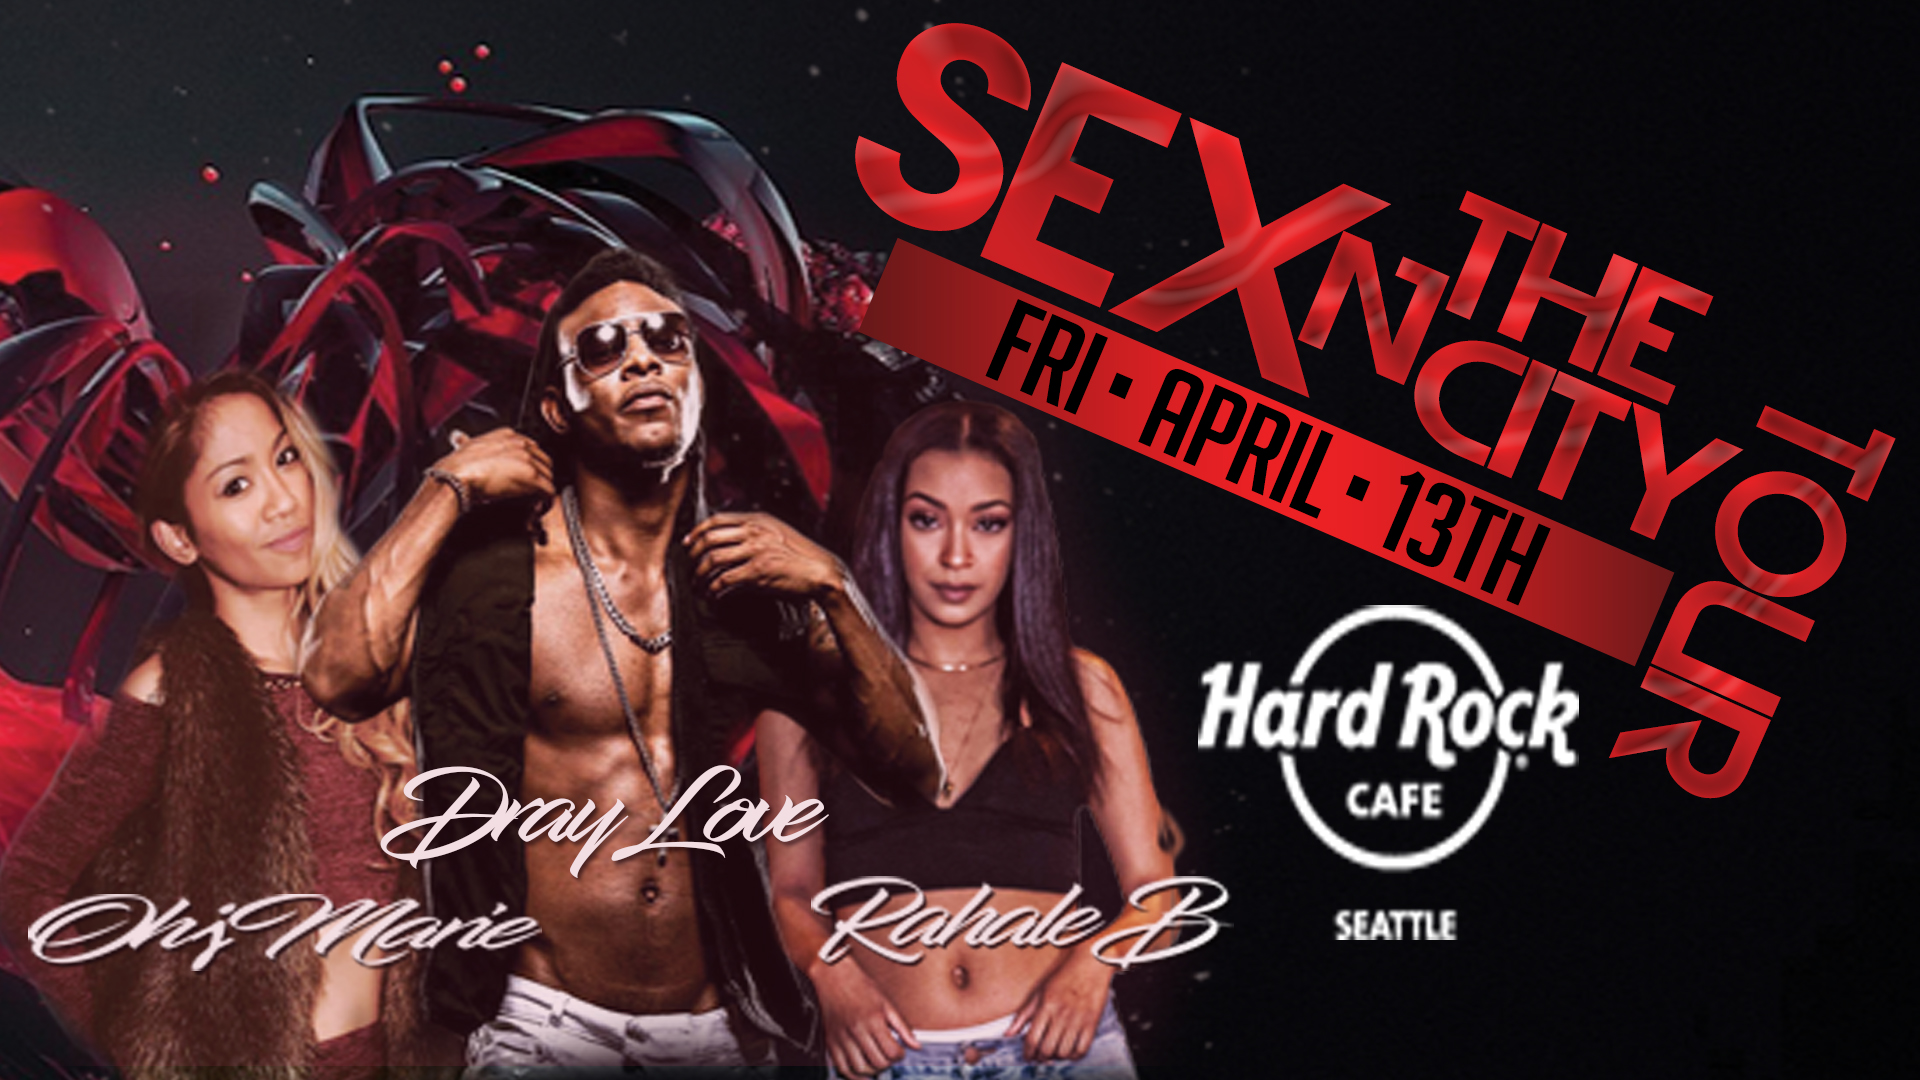 Sexy R&B Hard Rock Facebook Events